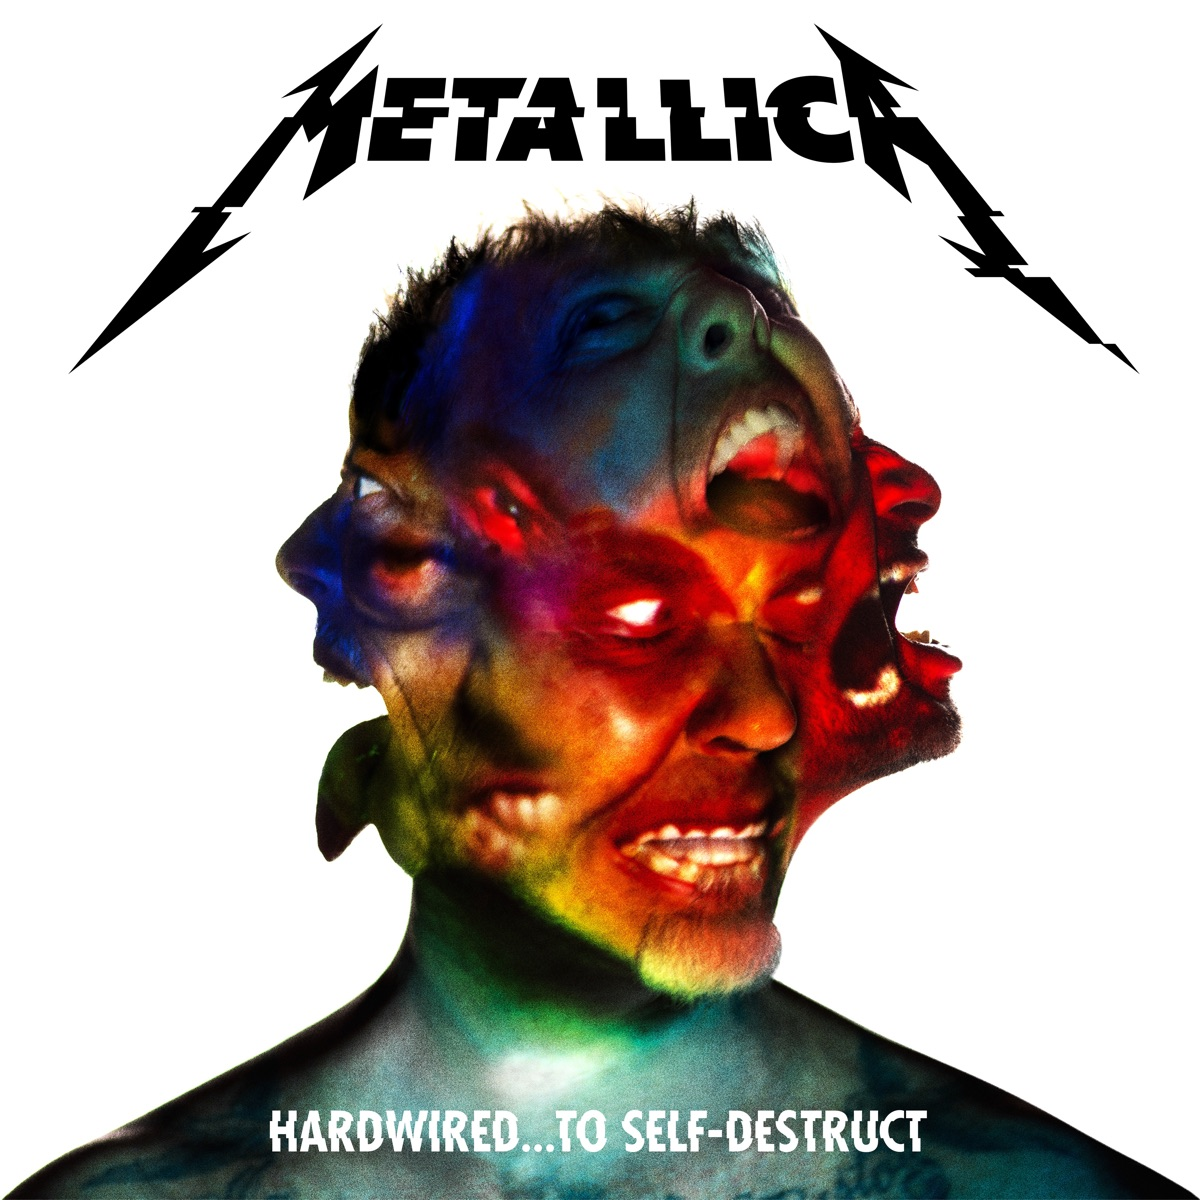 Hardwired To Self Destruct Album Cover By Metallica